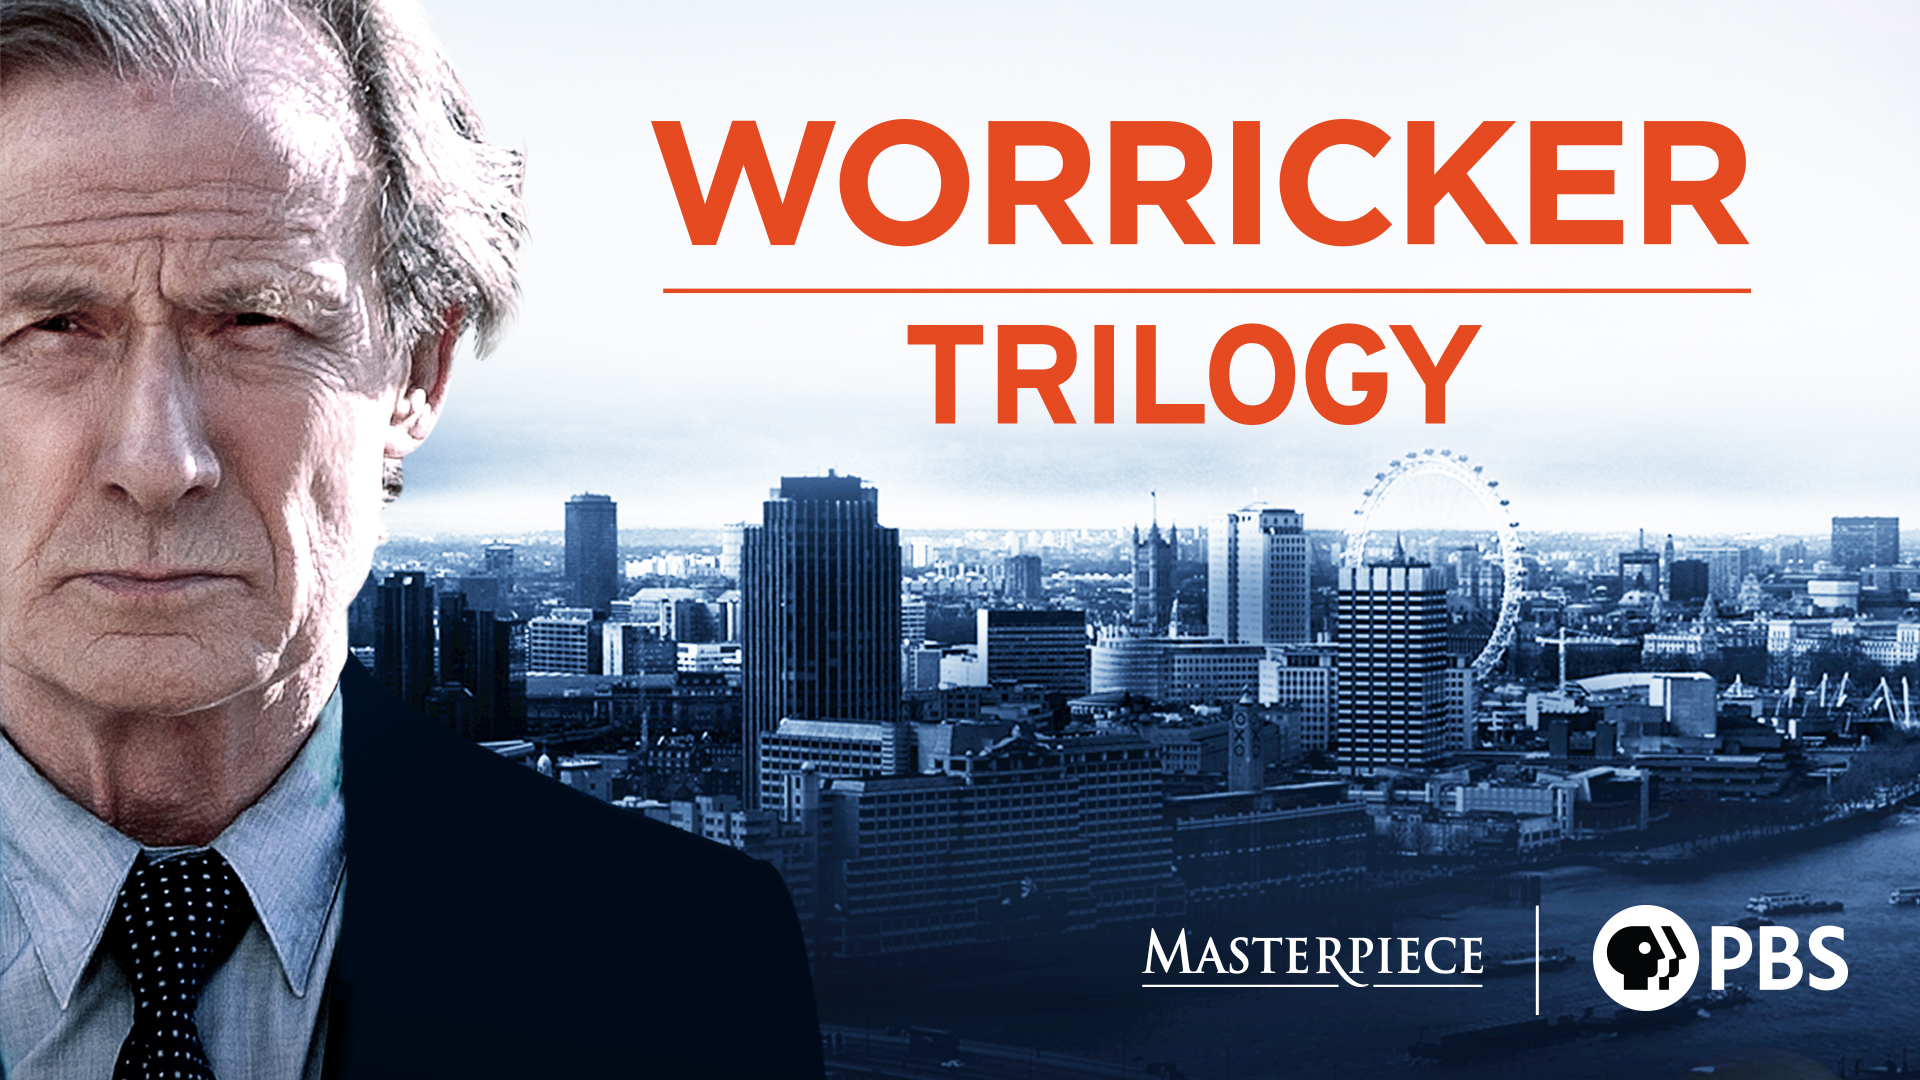 Worricker Trilogy